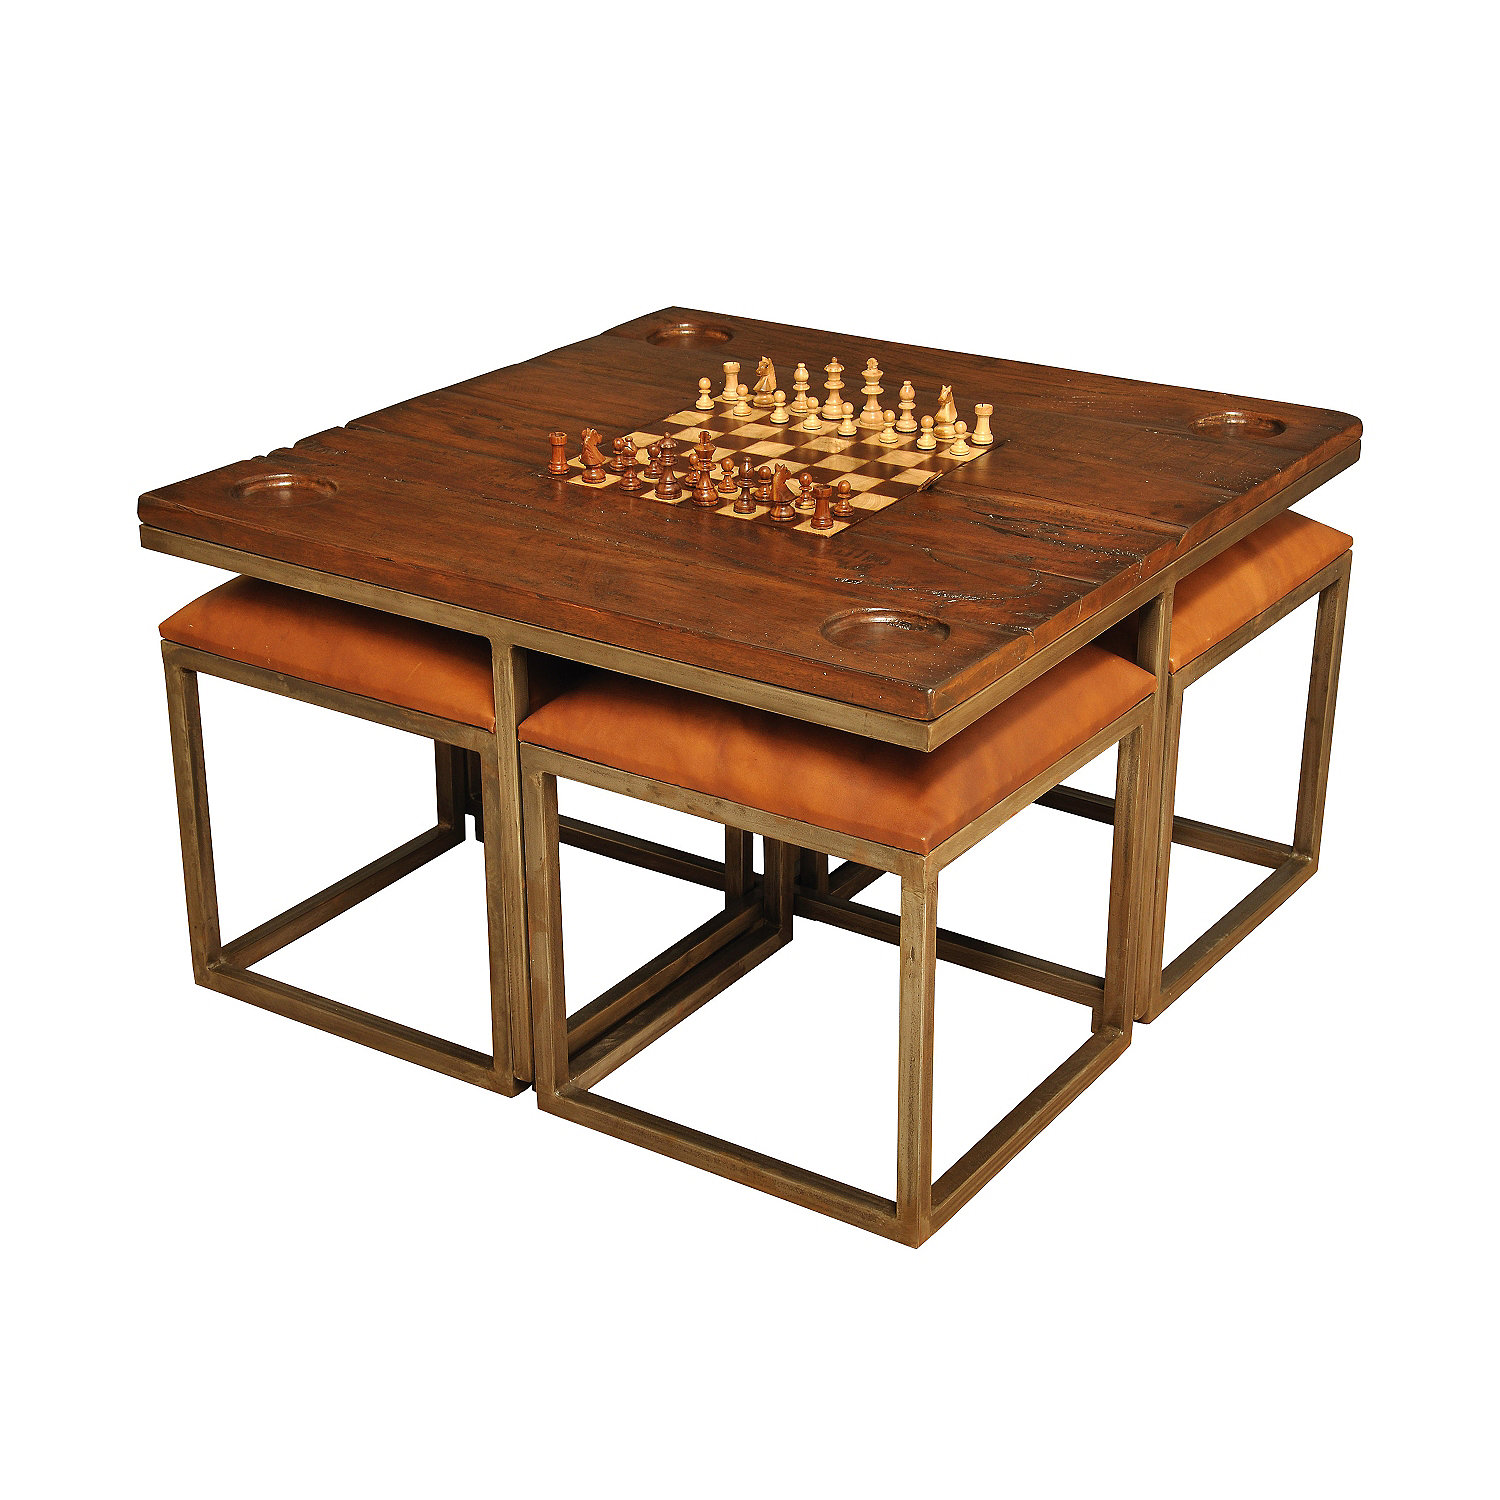 ... Game Top Coffee Table with Leather Stools. Preparing Zoom - Game Top Coffee Table With Leather Stools - Wine Enthusiast